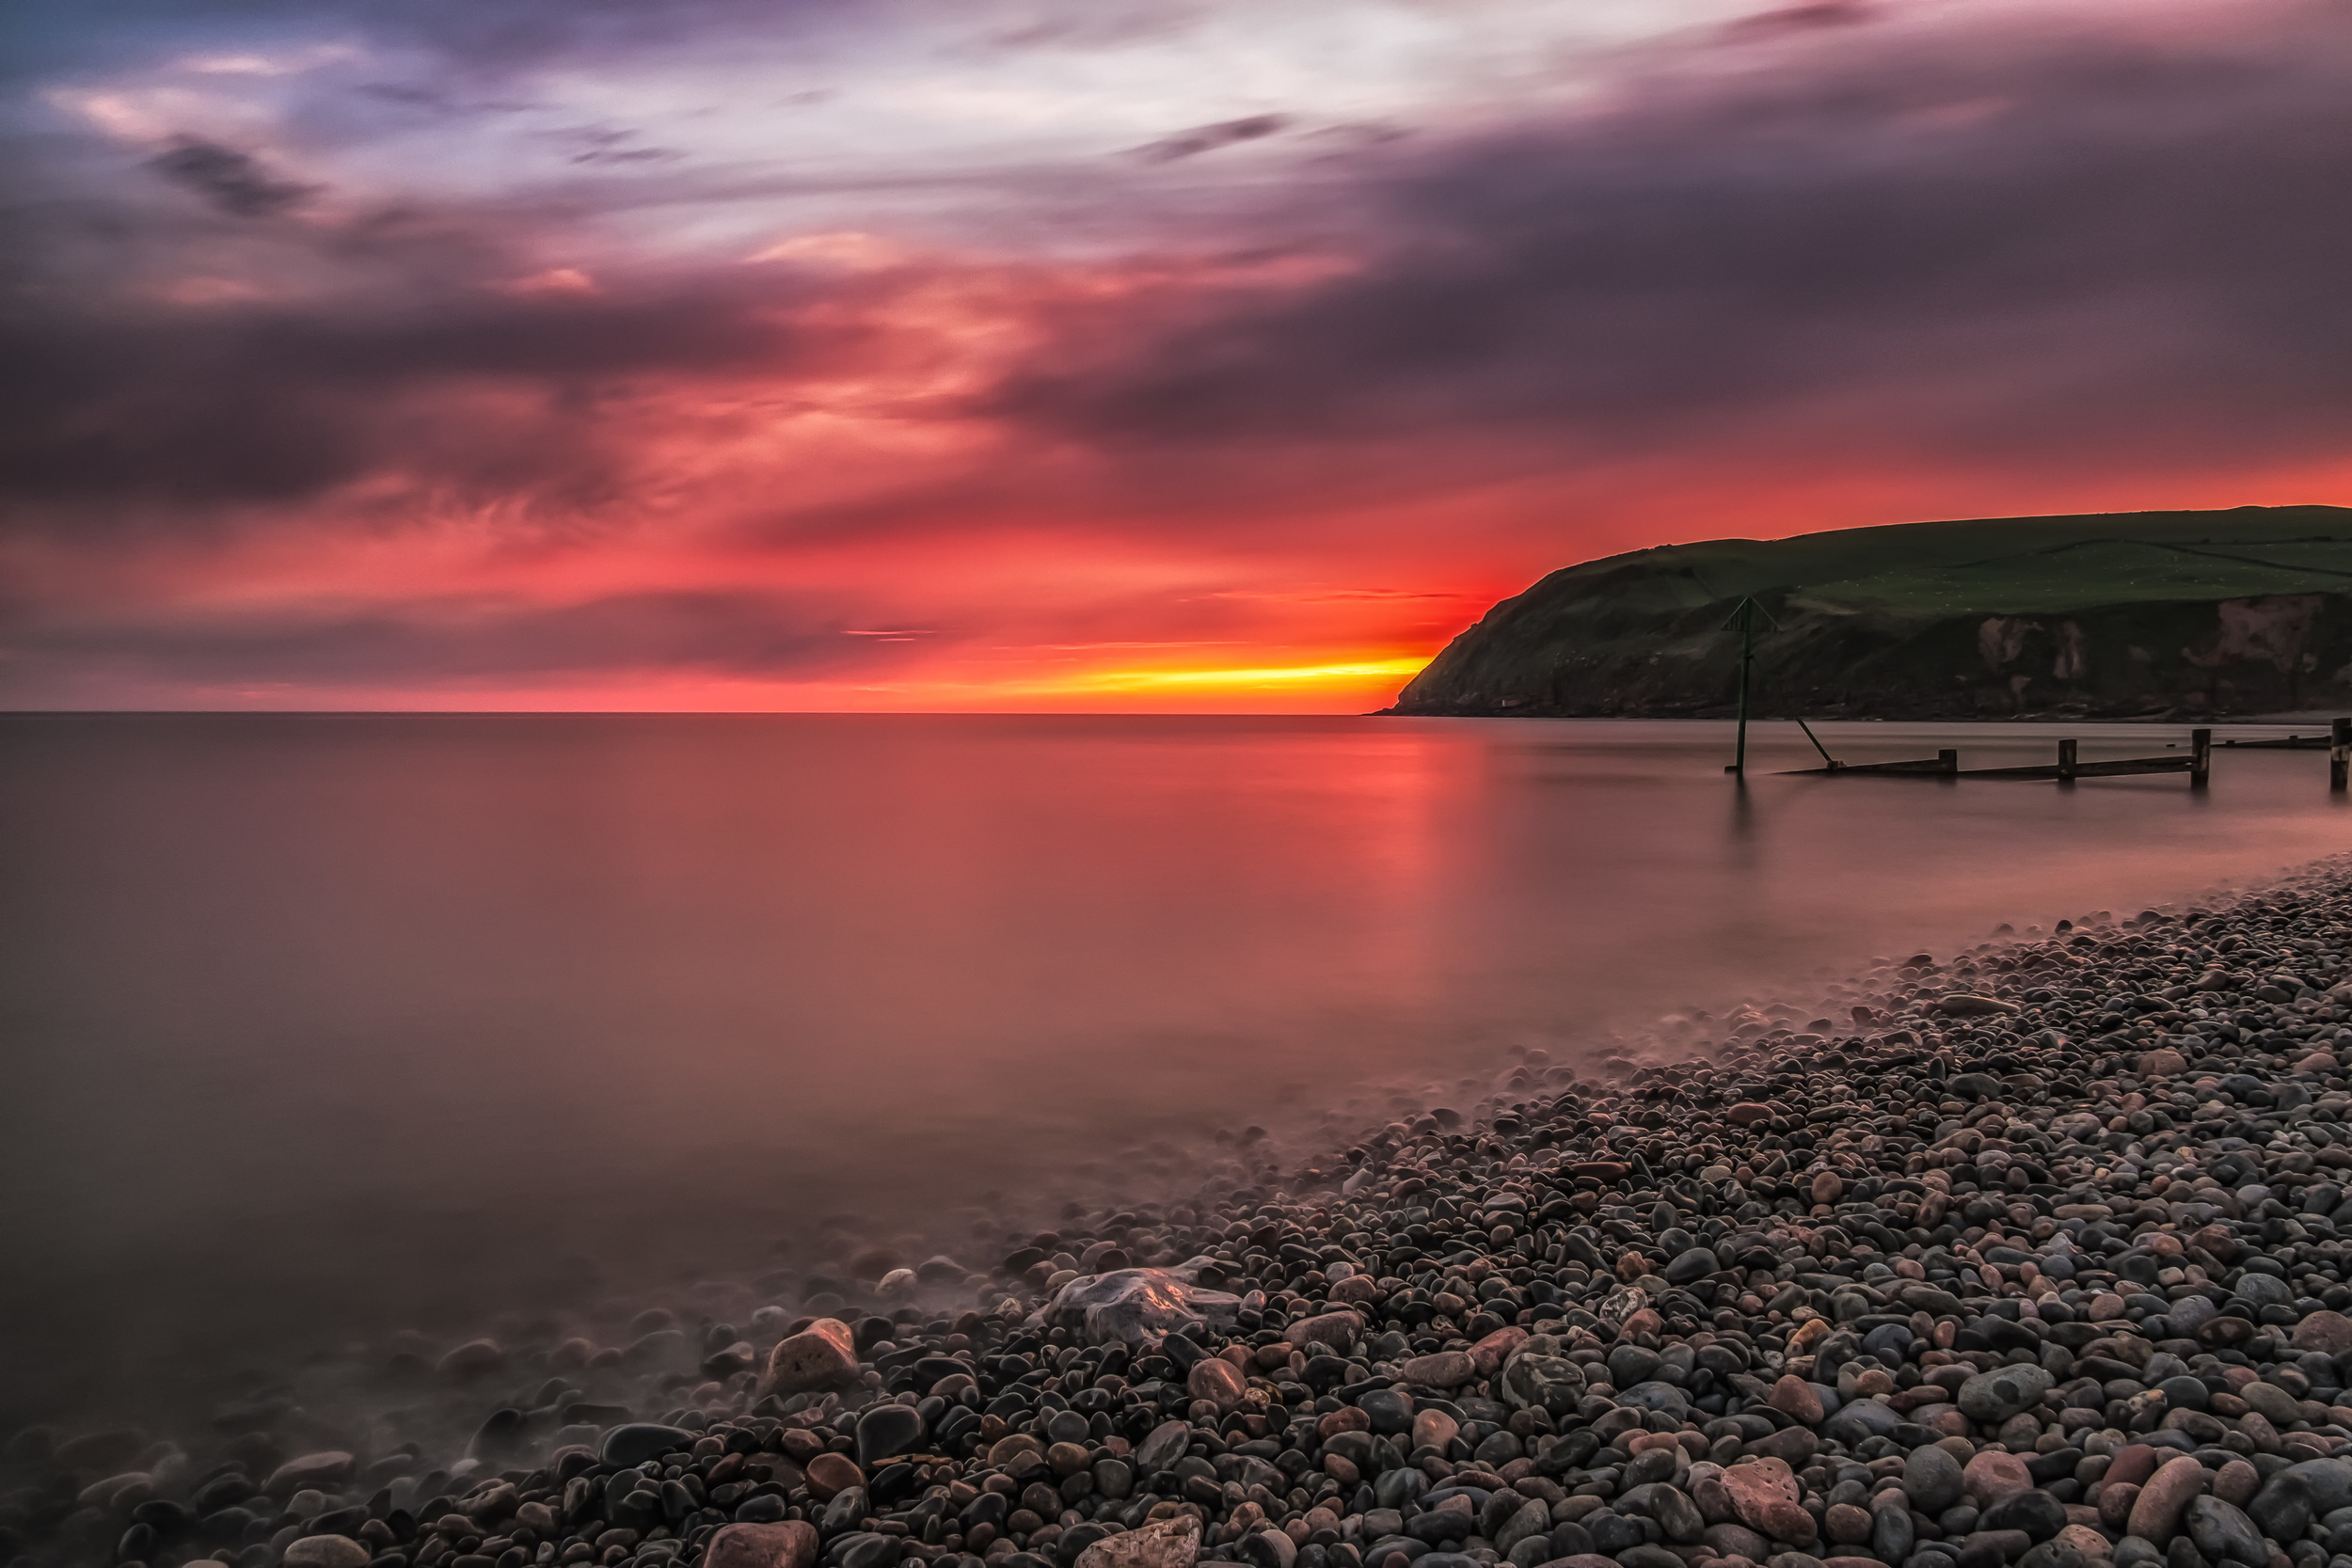 Sunset over St Bees on the Cumbrian coast.Fujifilm X-T1 + 18mm f/2 @ f/10. ISO250. B+W ND Filter. 28 Second Exposure.